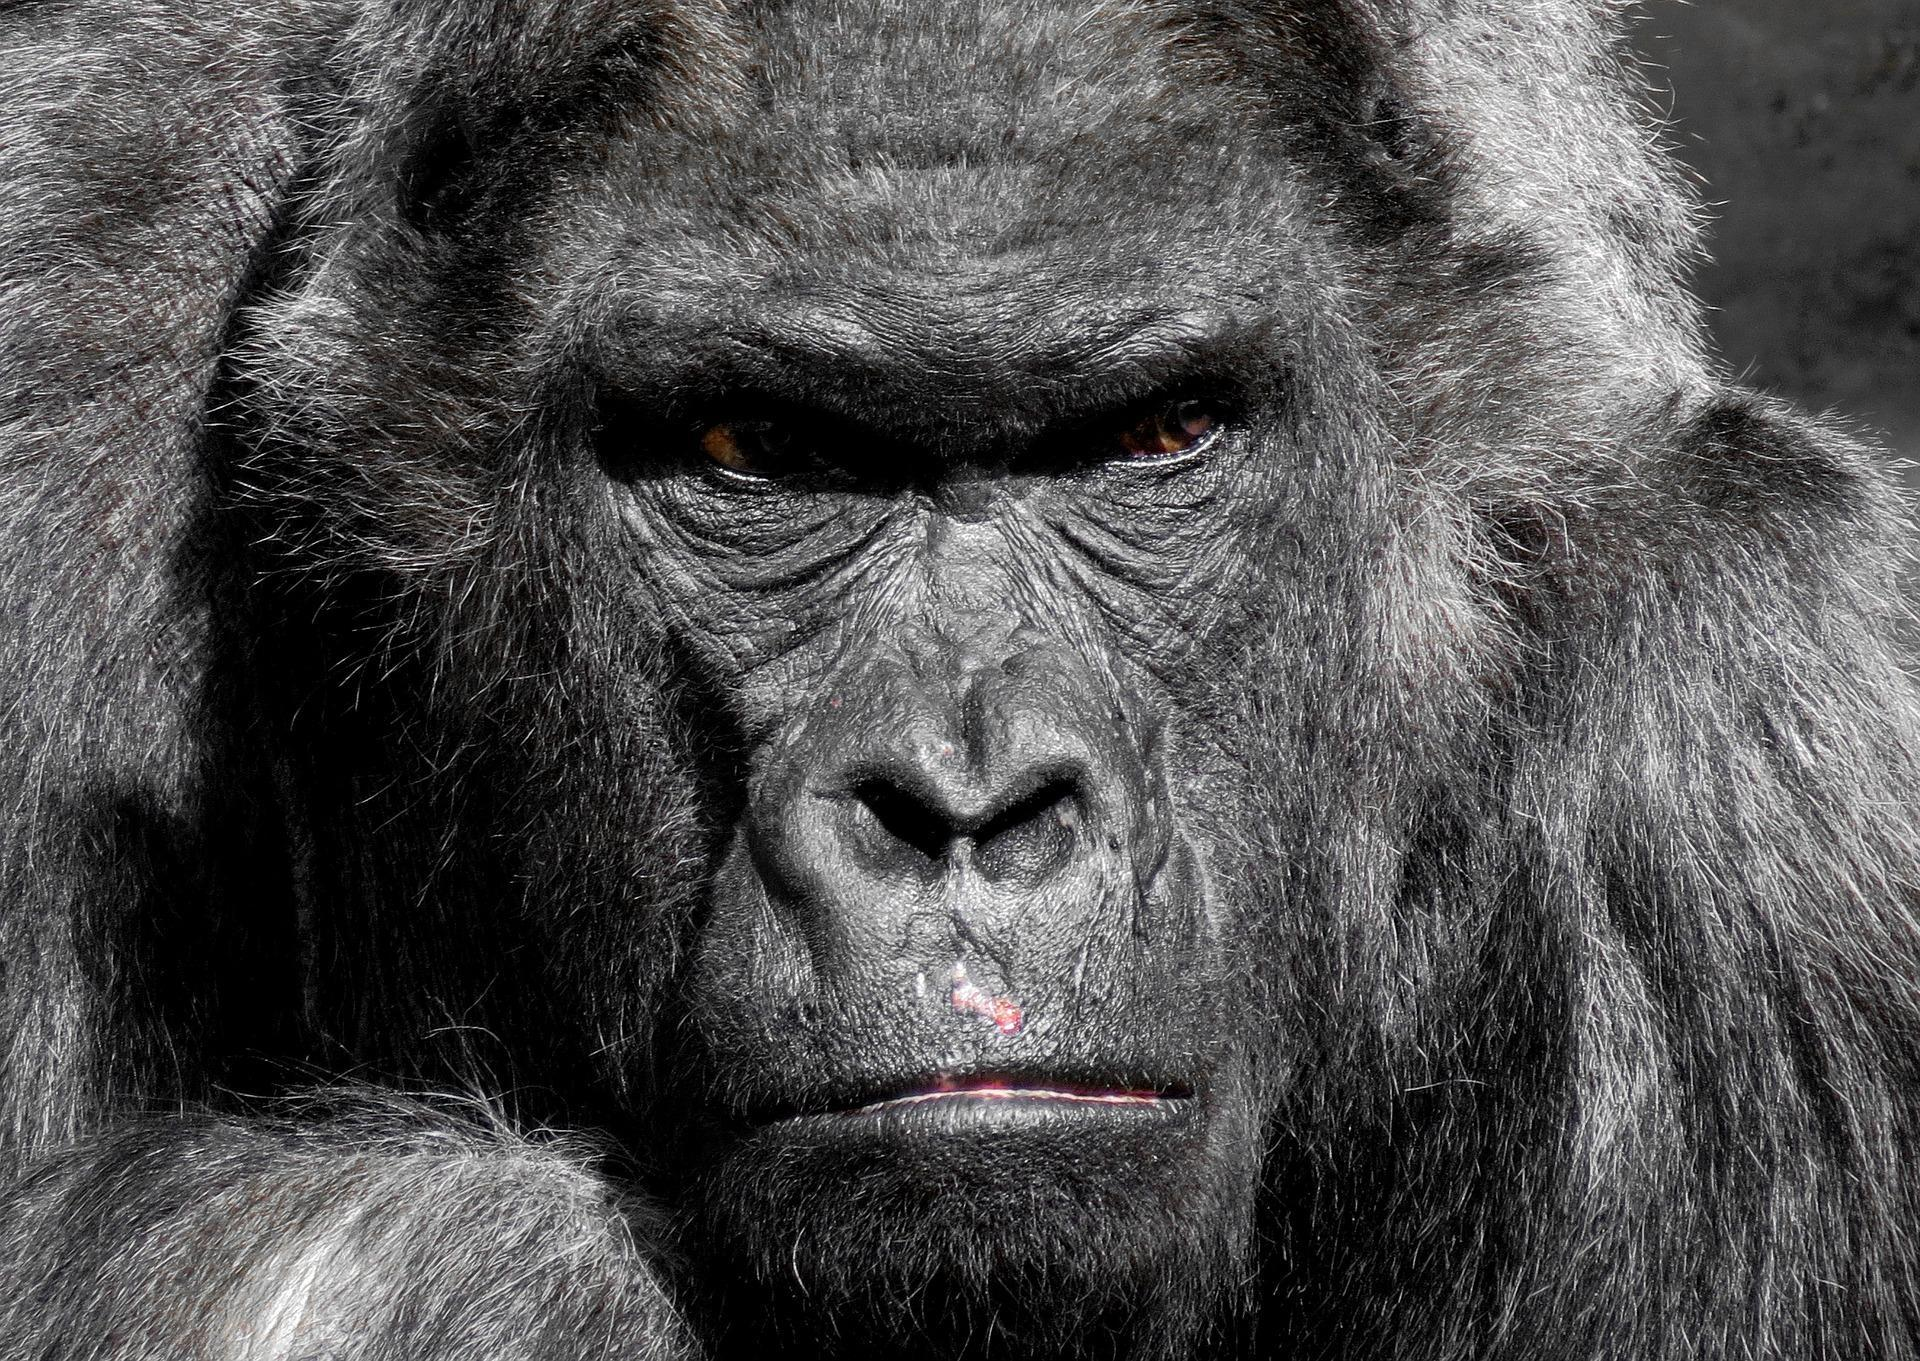 Gorilla Wallpaper Hd For Android Apk Download